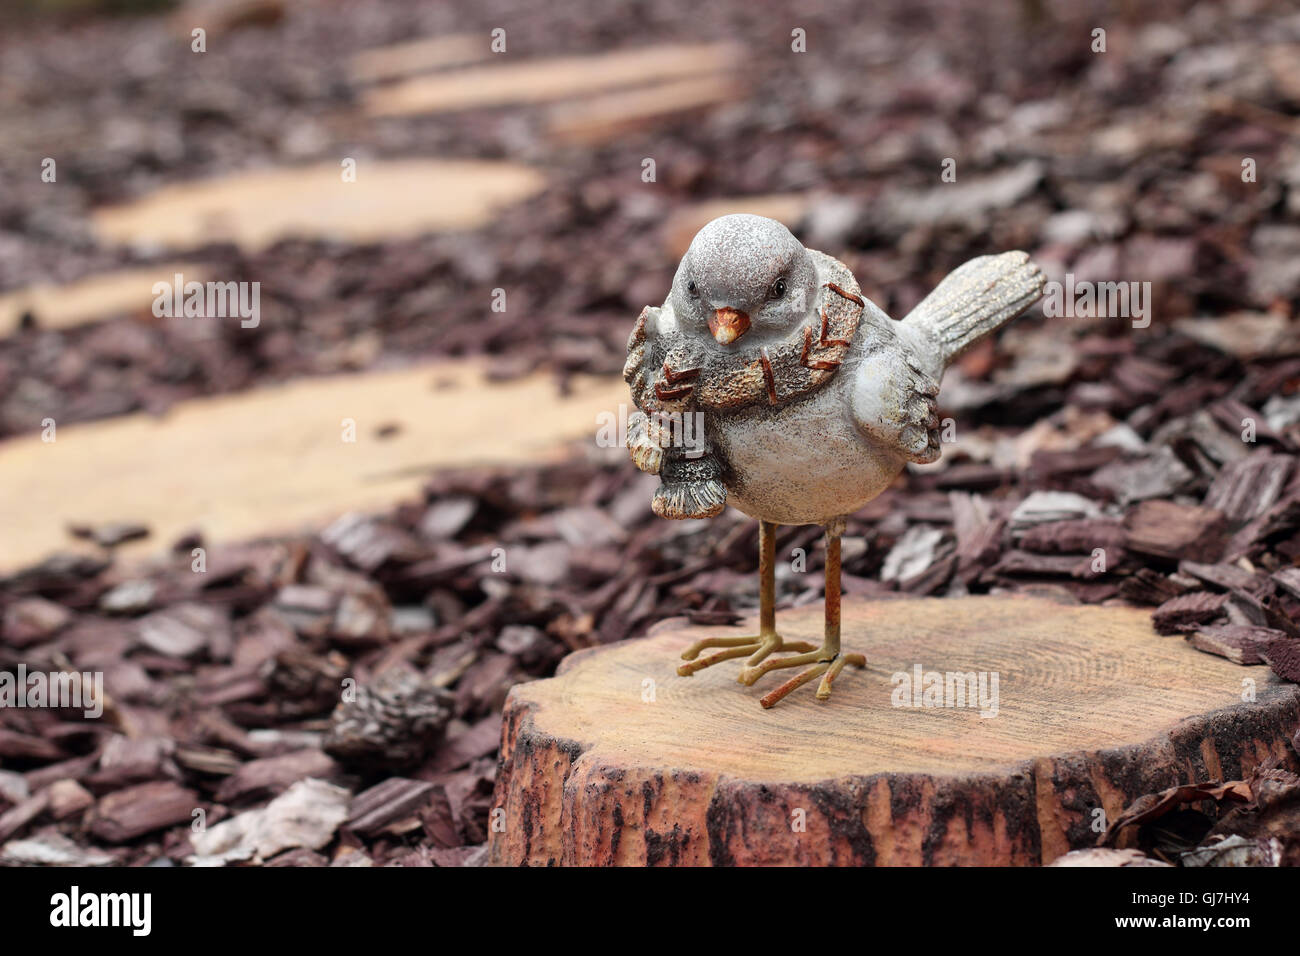 Figurines - Bird on a stub on a wooden stub background - Stock Image